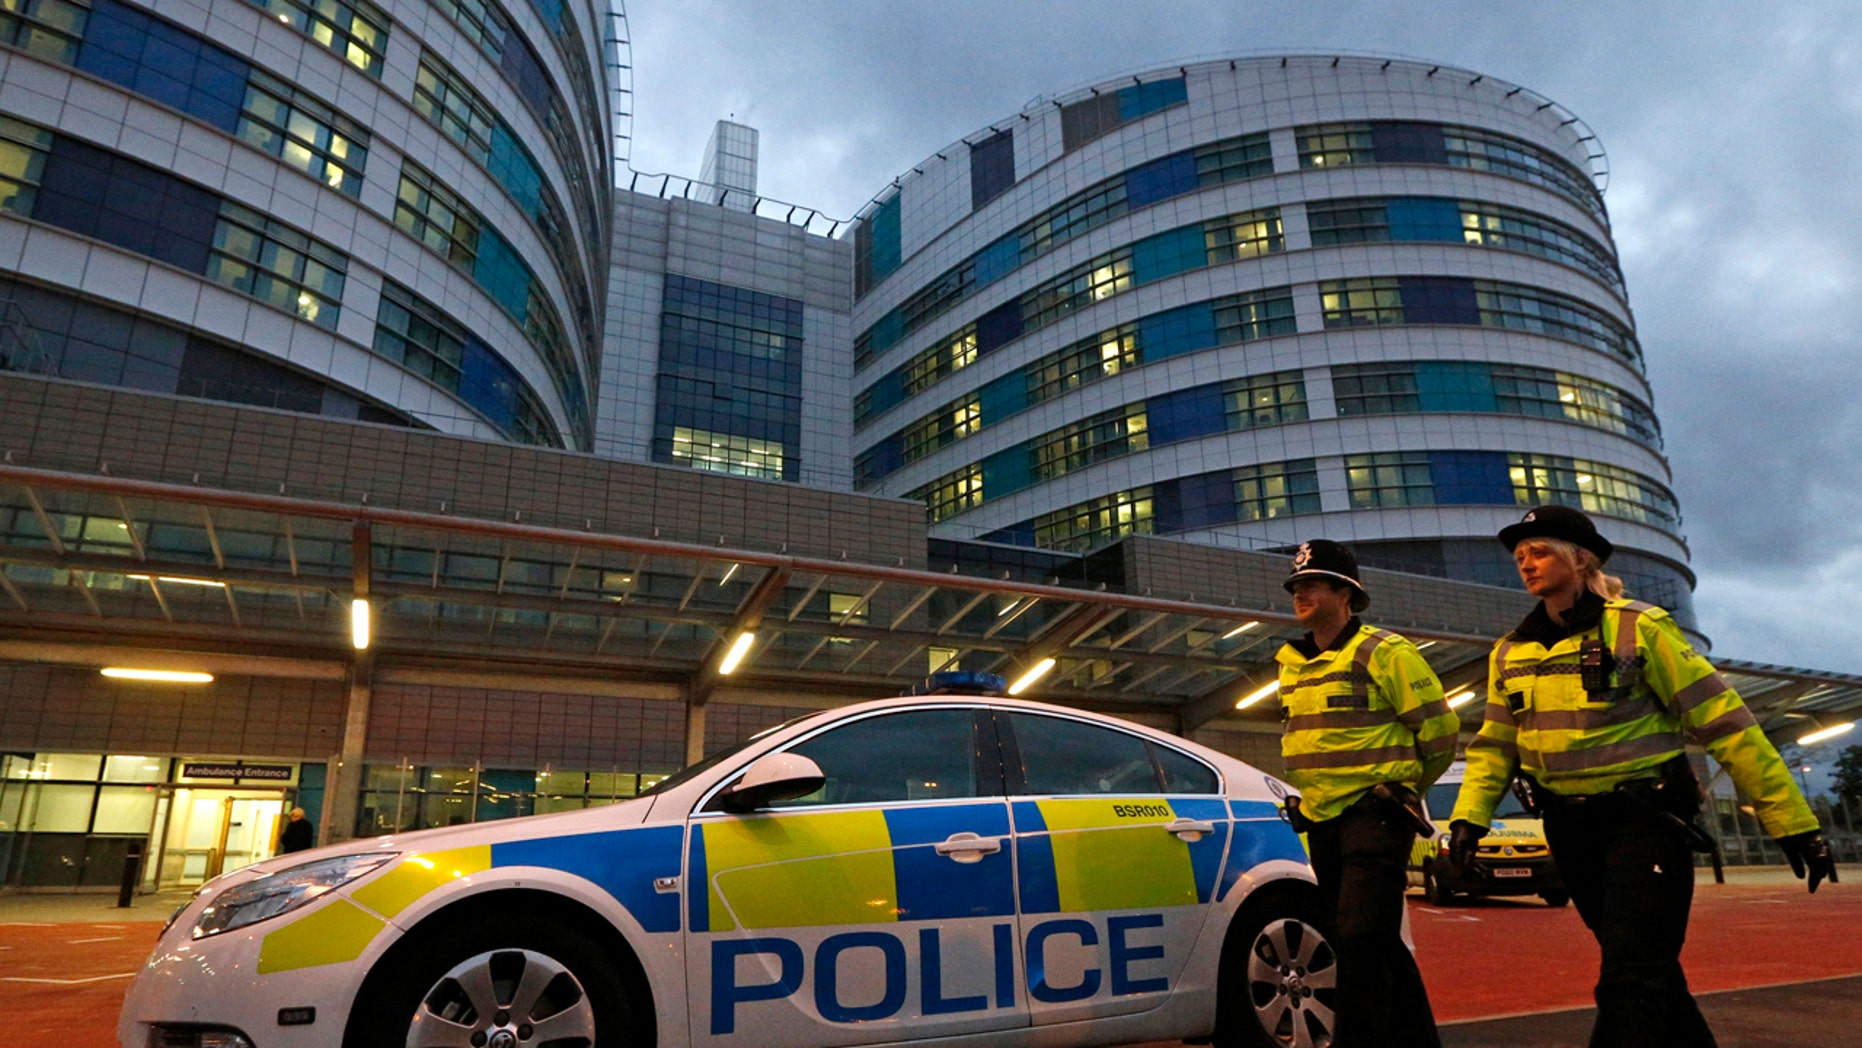 A surgeon who worked at Queen Elizabeth Hospital, seen above in 2012, admitted to etching his initials into two patients' livers during operations.